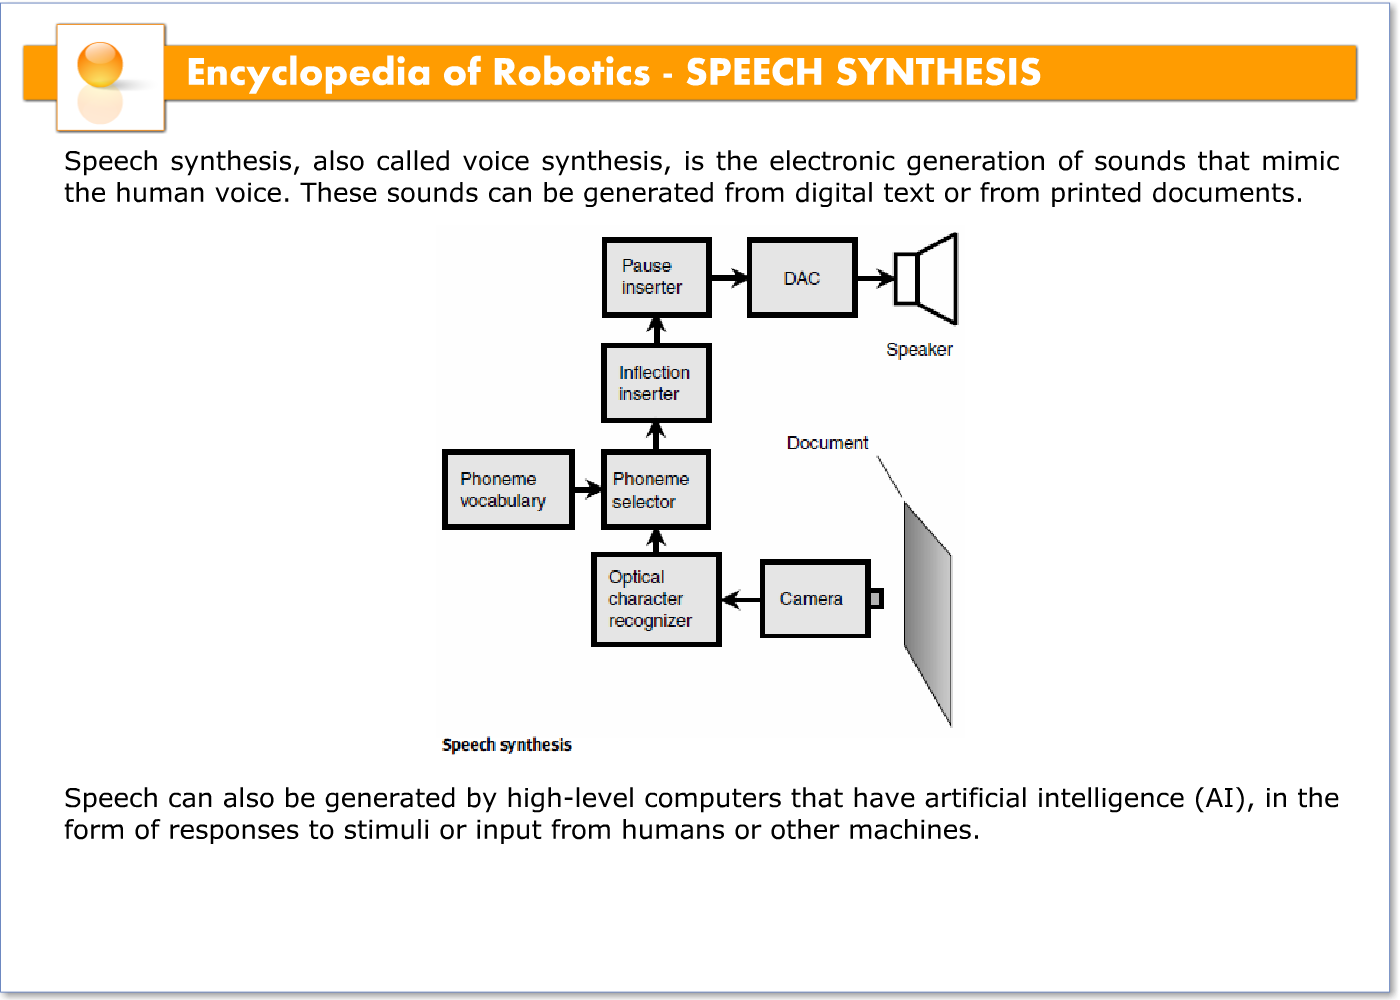 speech sythesis Methods you can implement to respond to events that occur during speech synthesis.